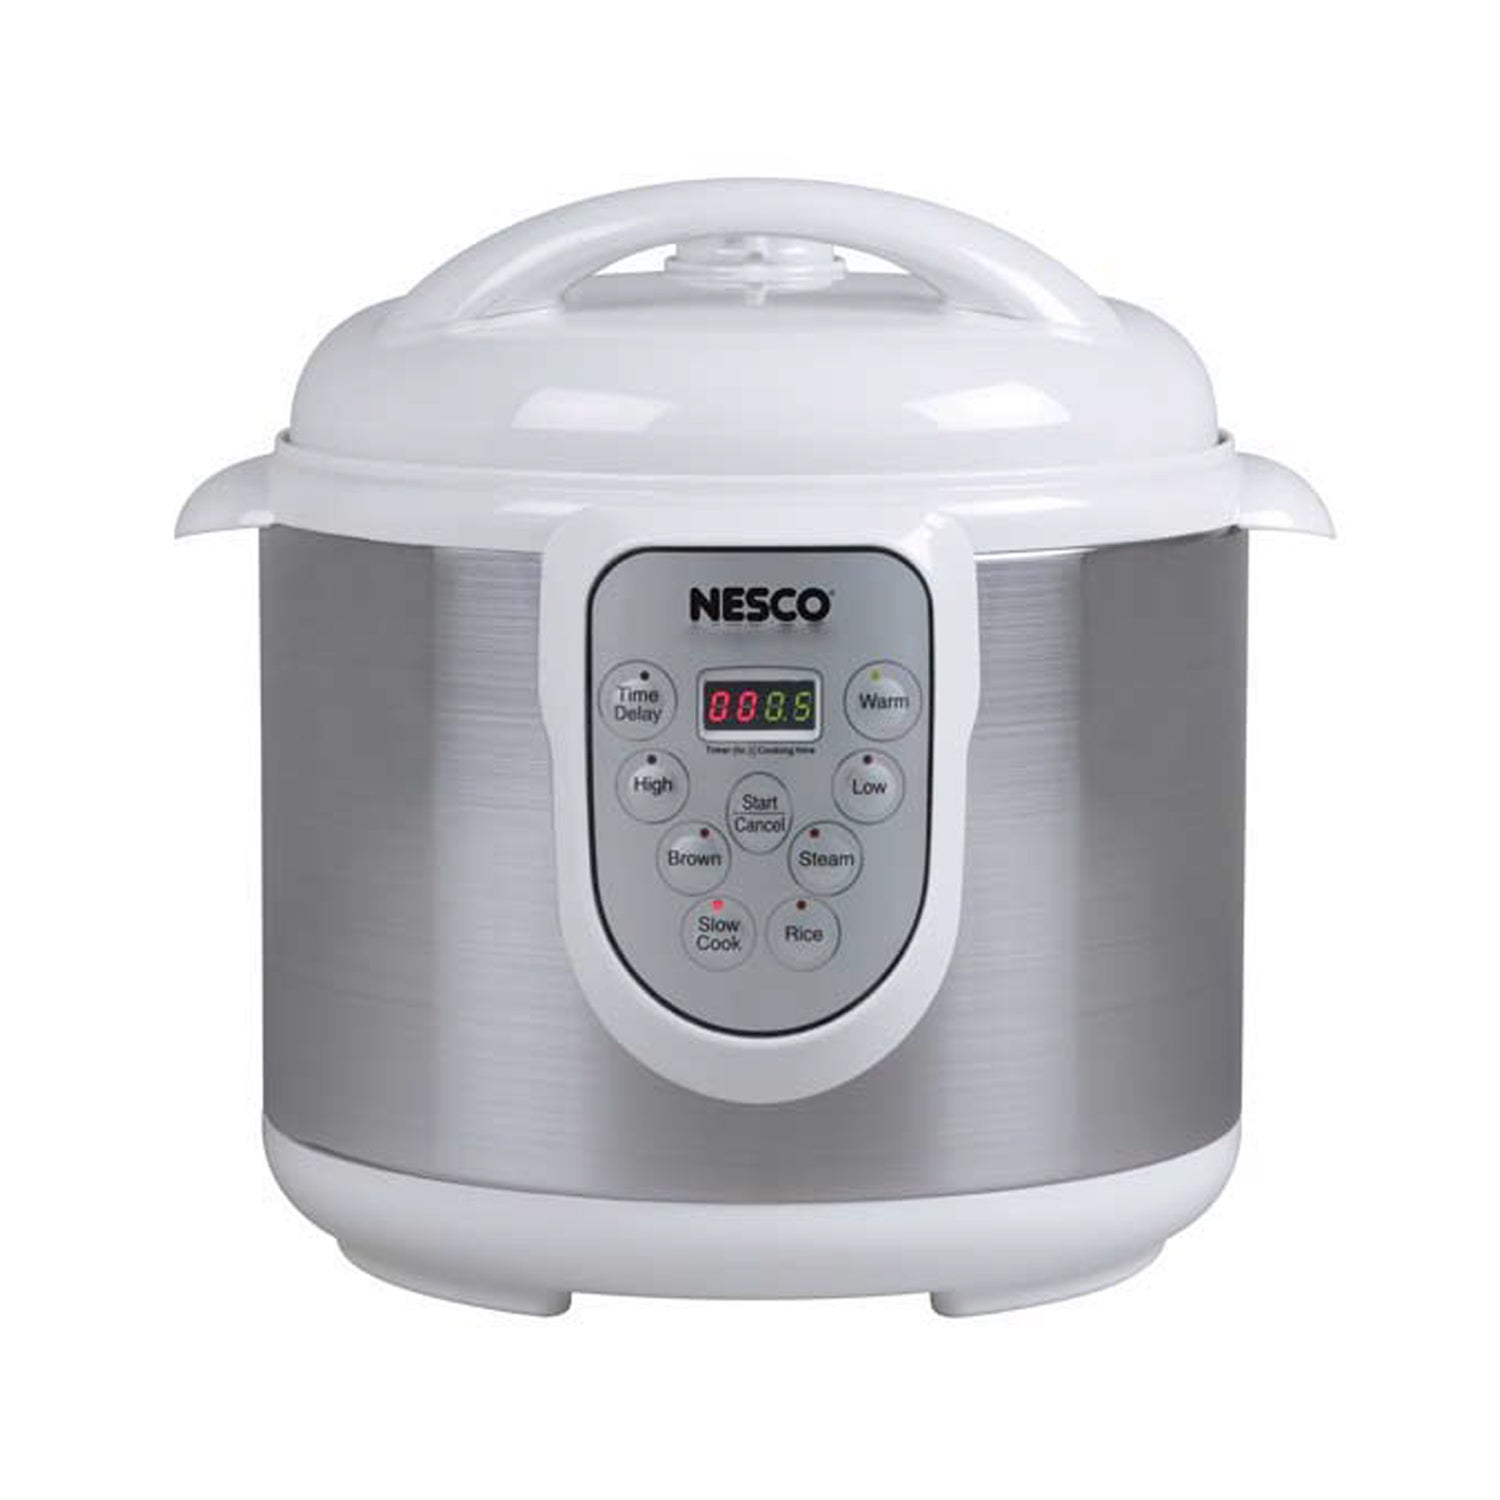 Nesco 6 Quart 4-in-1 Digital Pressure Cooker